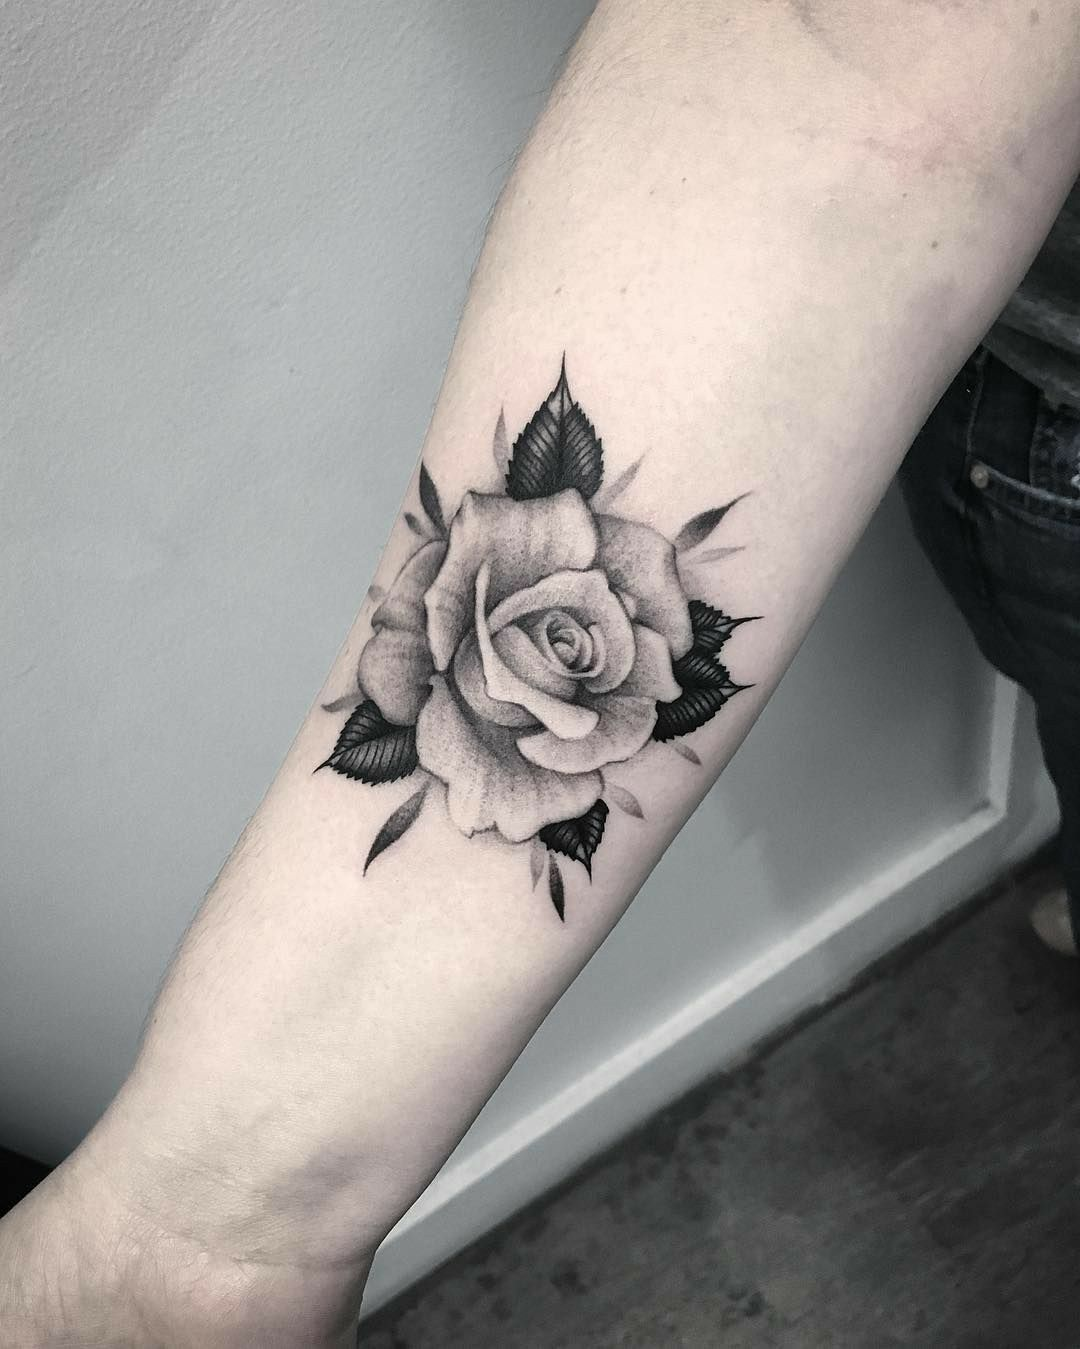 Pin By Angela Avina On Tattoo Rose Tattoo Forearm White Rose Tattoos Rose Tattoos On Wrist